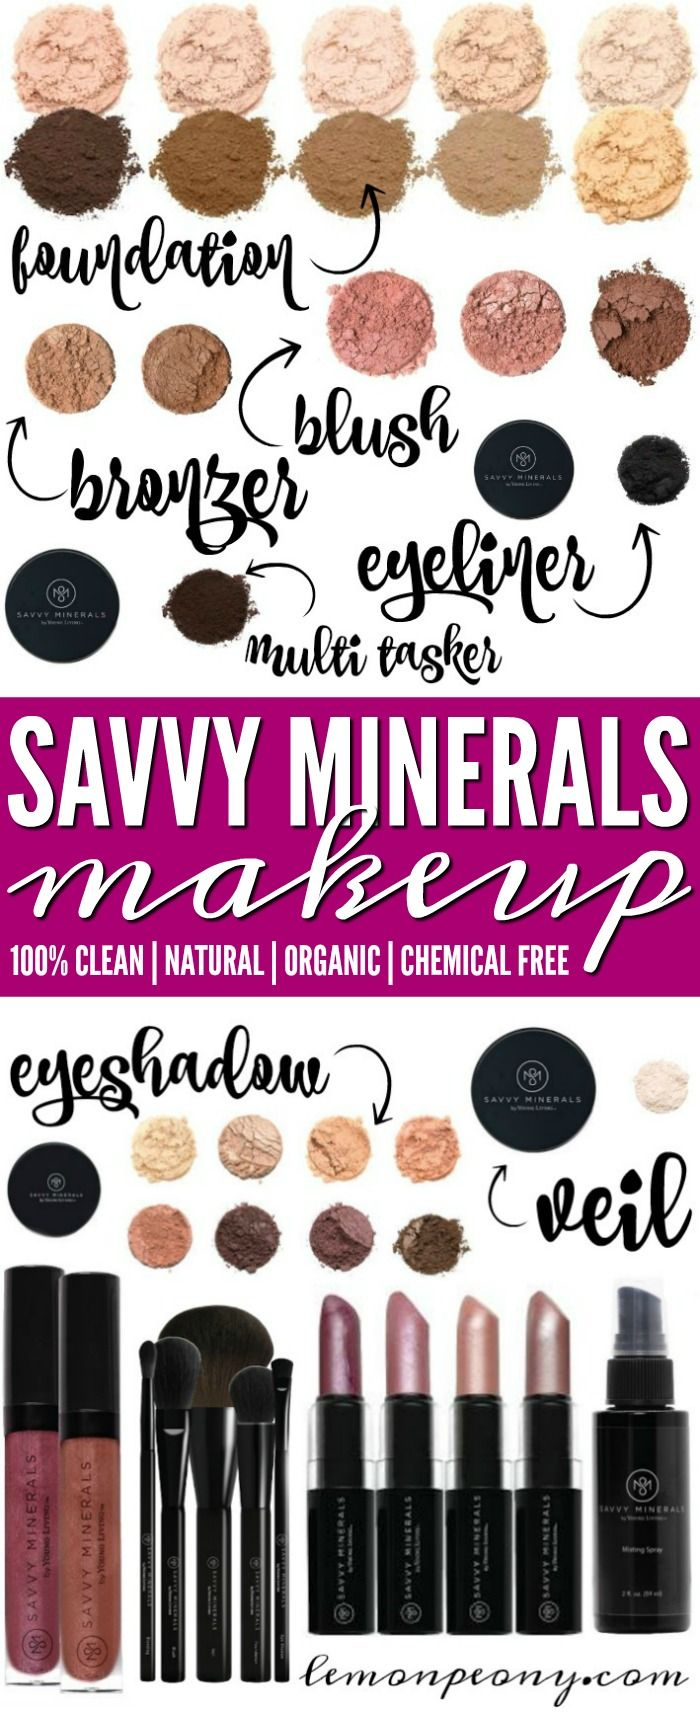 Savvy Minerals Natural Makeup! Chemical Free and Safe Makeup Products from Young Living!